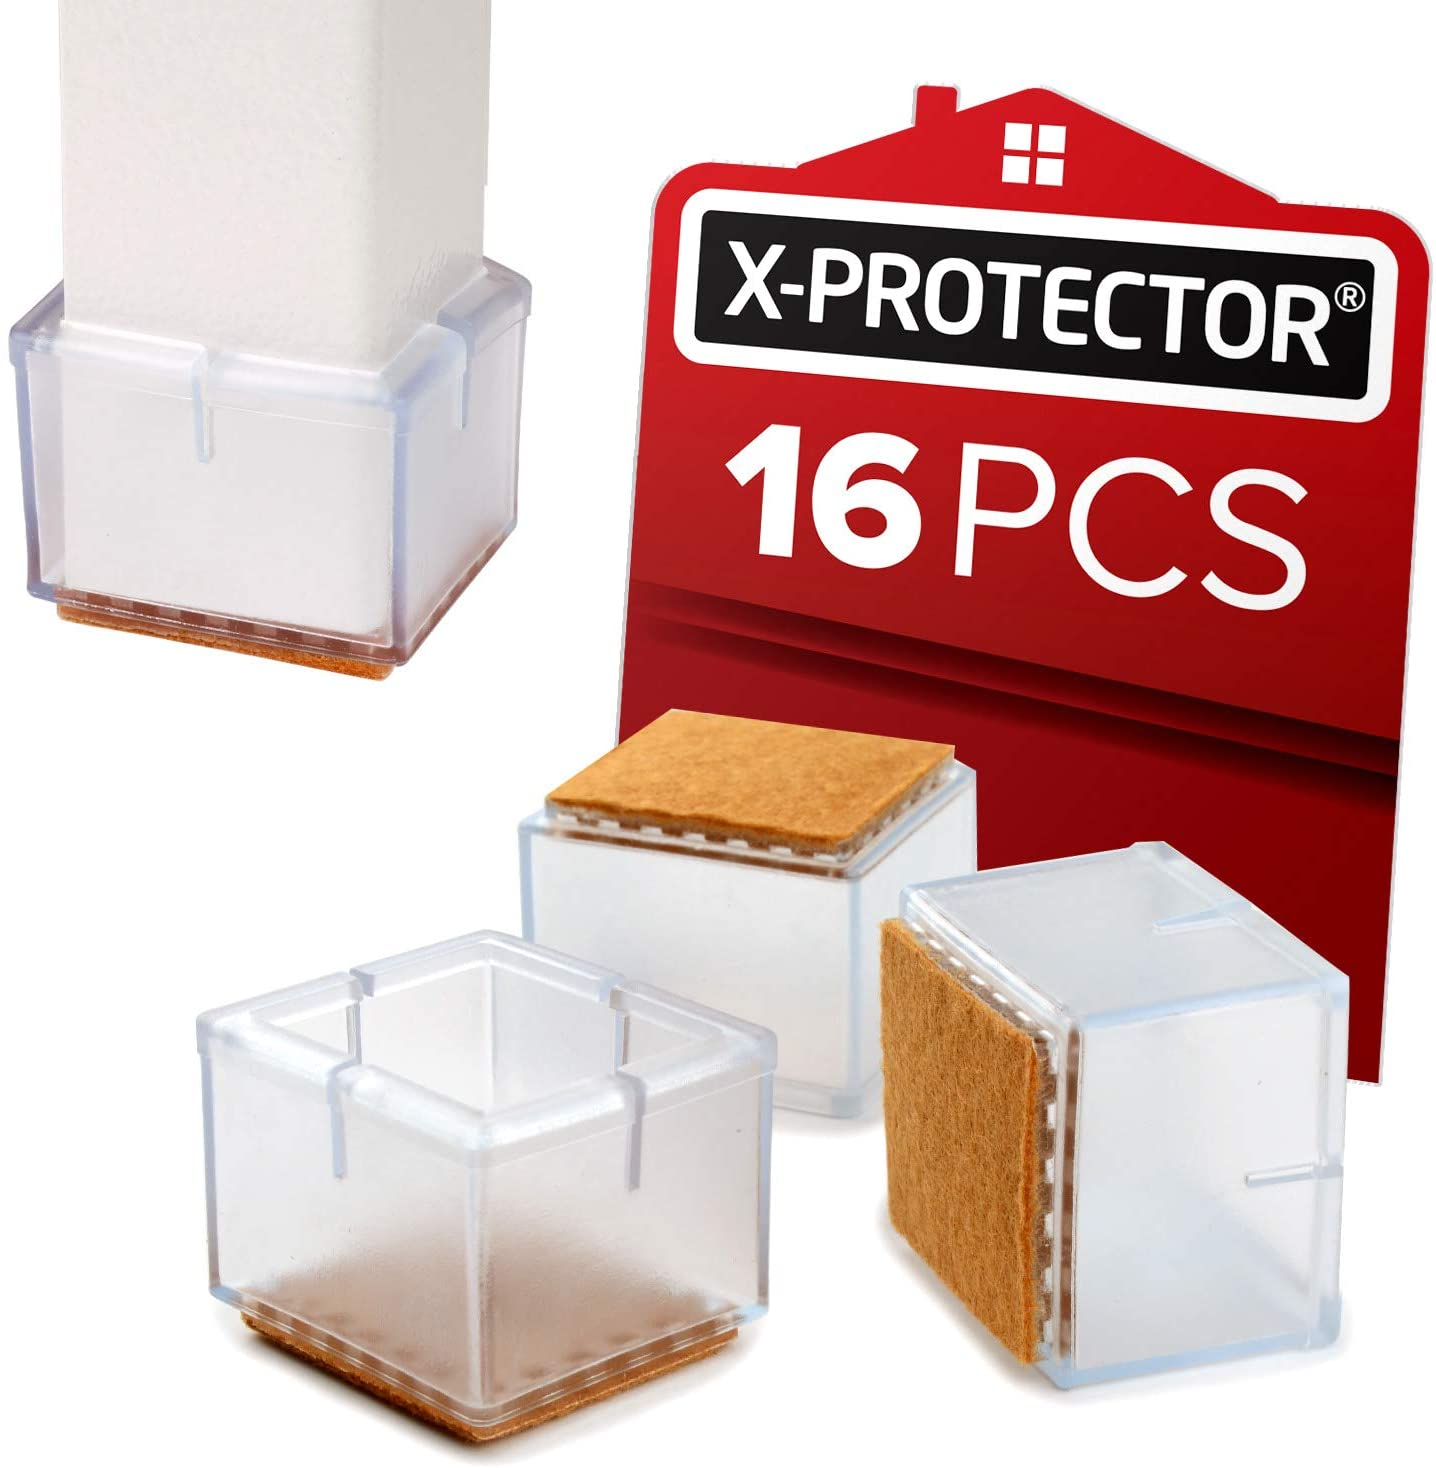 "Chair Leg Caps X-PROTECTOR - Silicone Floor Protectors for chairs 1 ¾"" 16pcs - Best Silicone Furniture Leg Caps - Premium Chair Protectors for Hardwood Floors – Protect and GLIDE SMOOTHLY on the Floor"